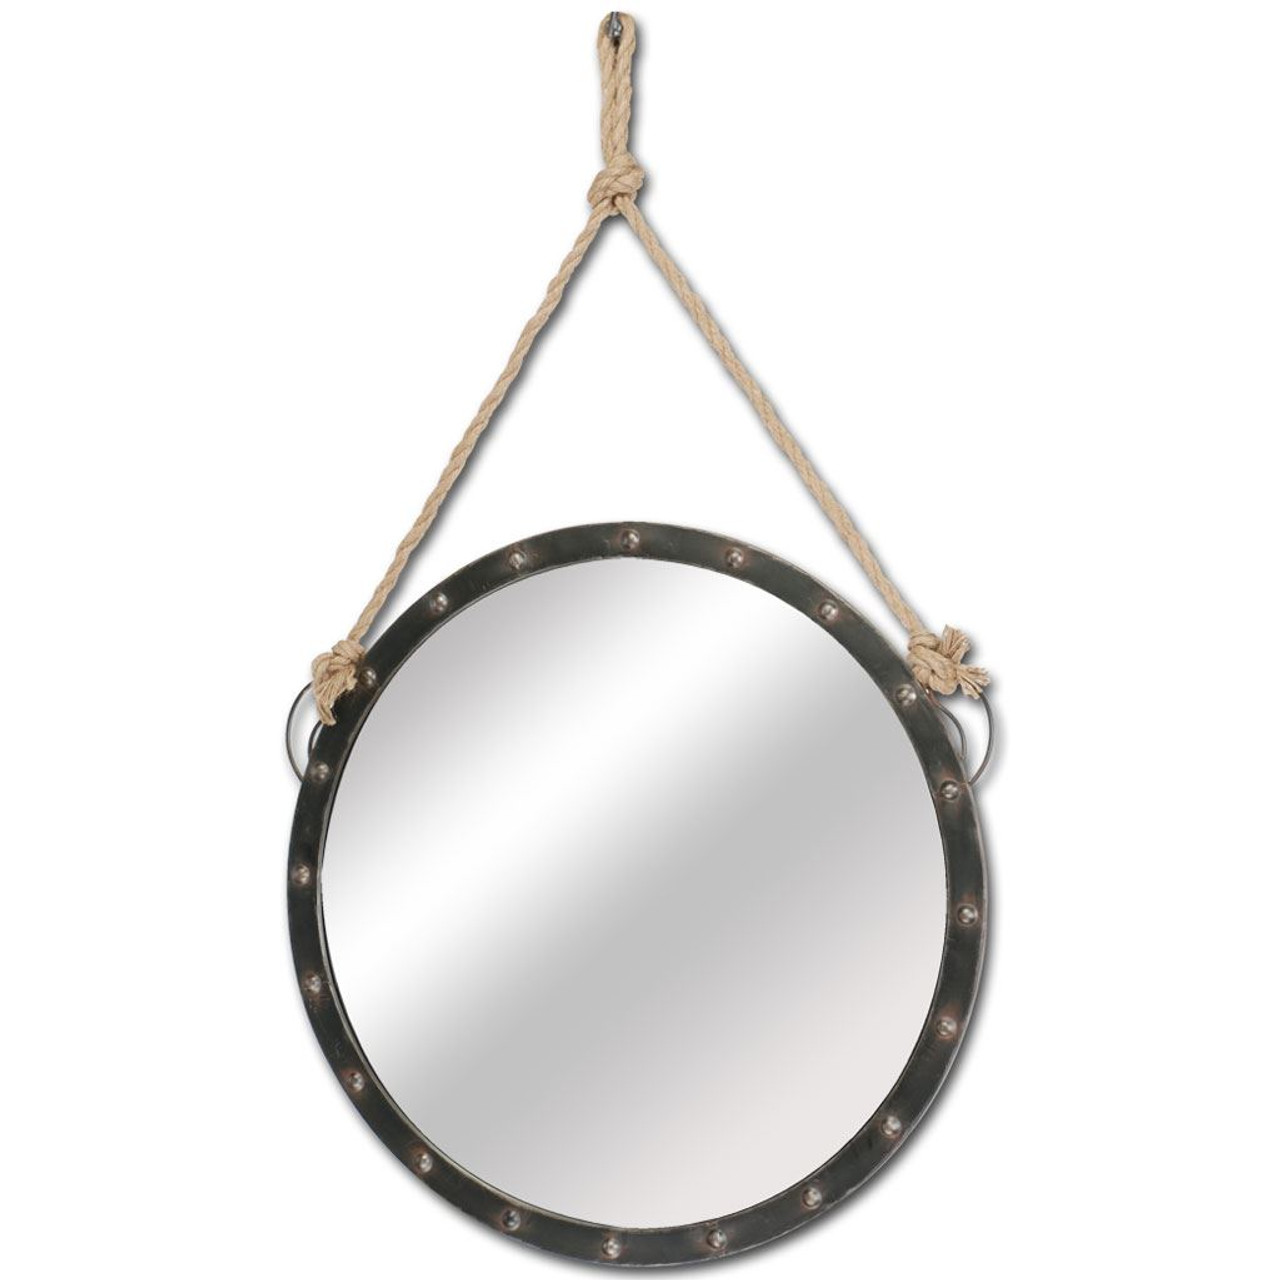 Pendula Round Hanging Wall Mirror With Rope Accent 27 By 39 Inches Giftopolis